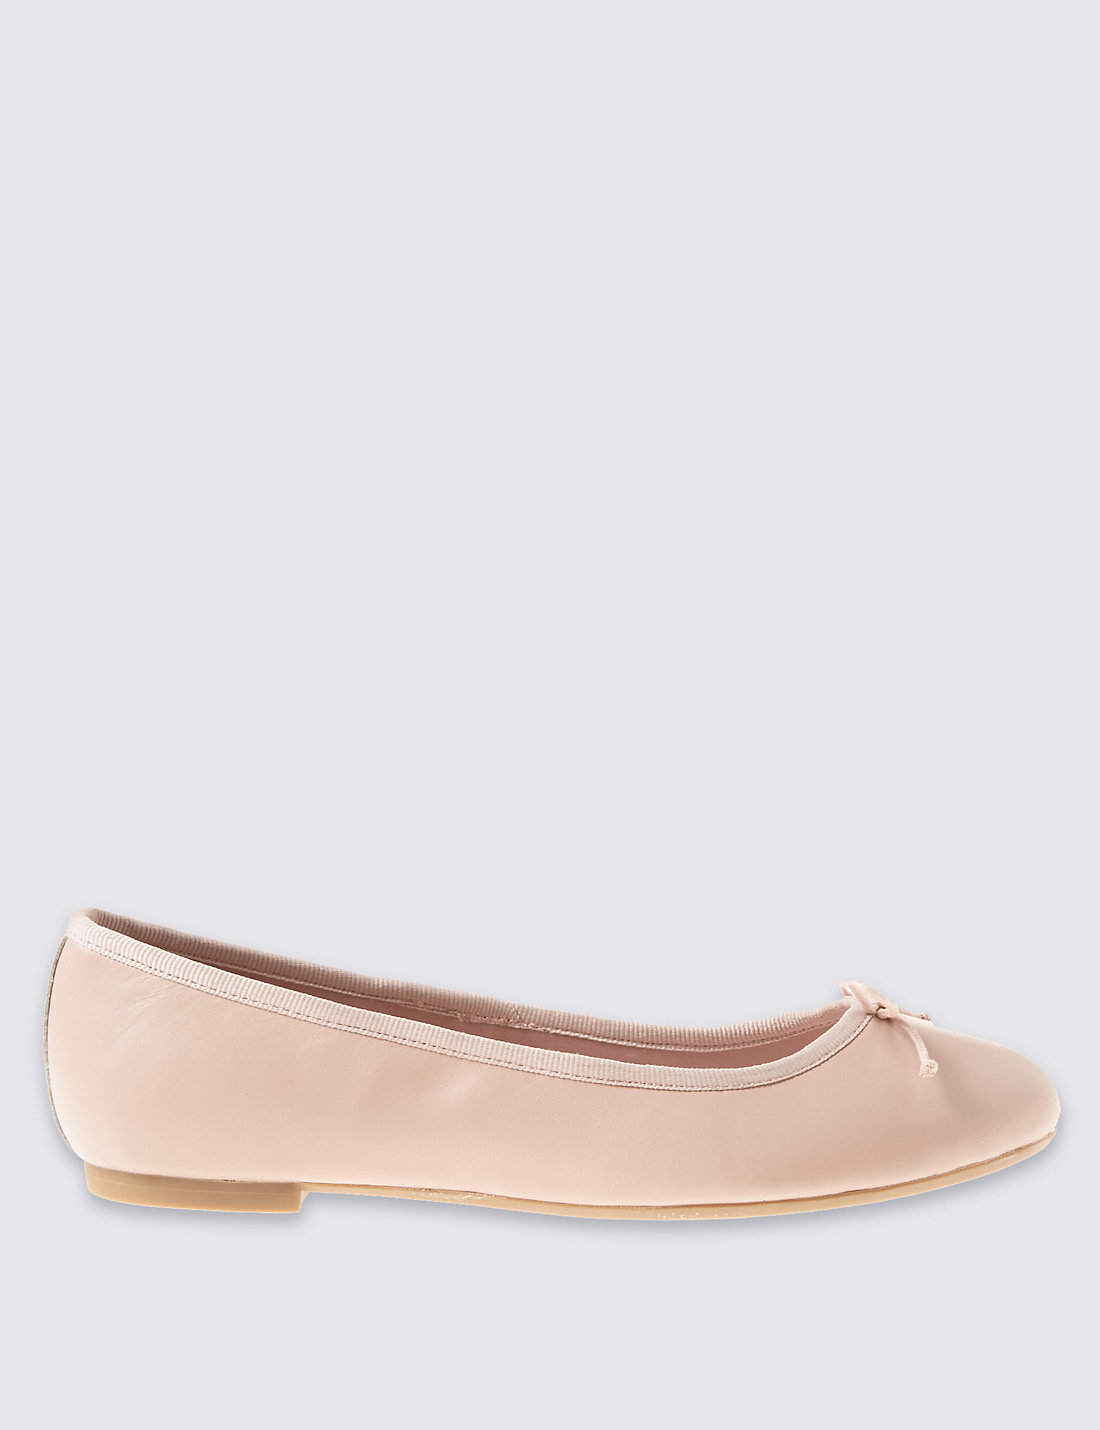 ballerina pumps leather ballerina pump shoes FSGCIIP